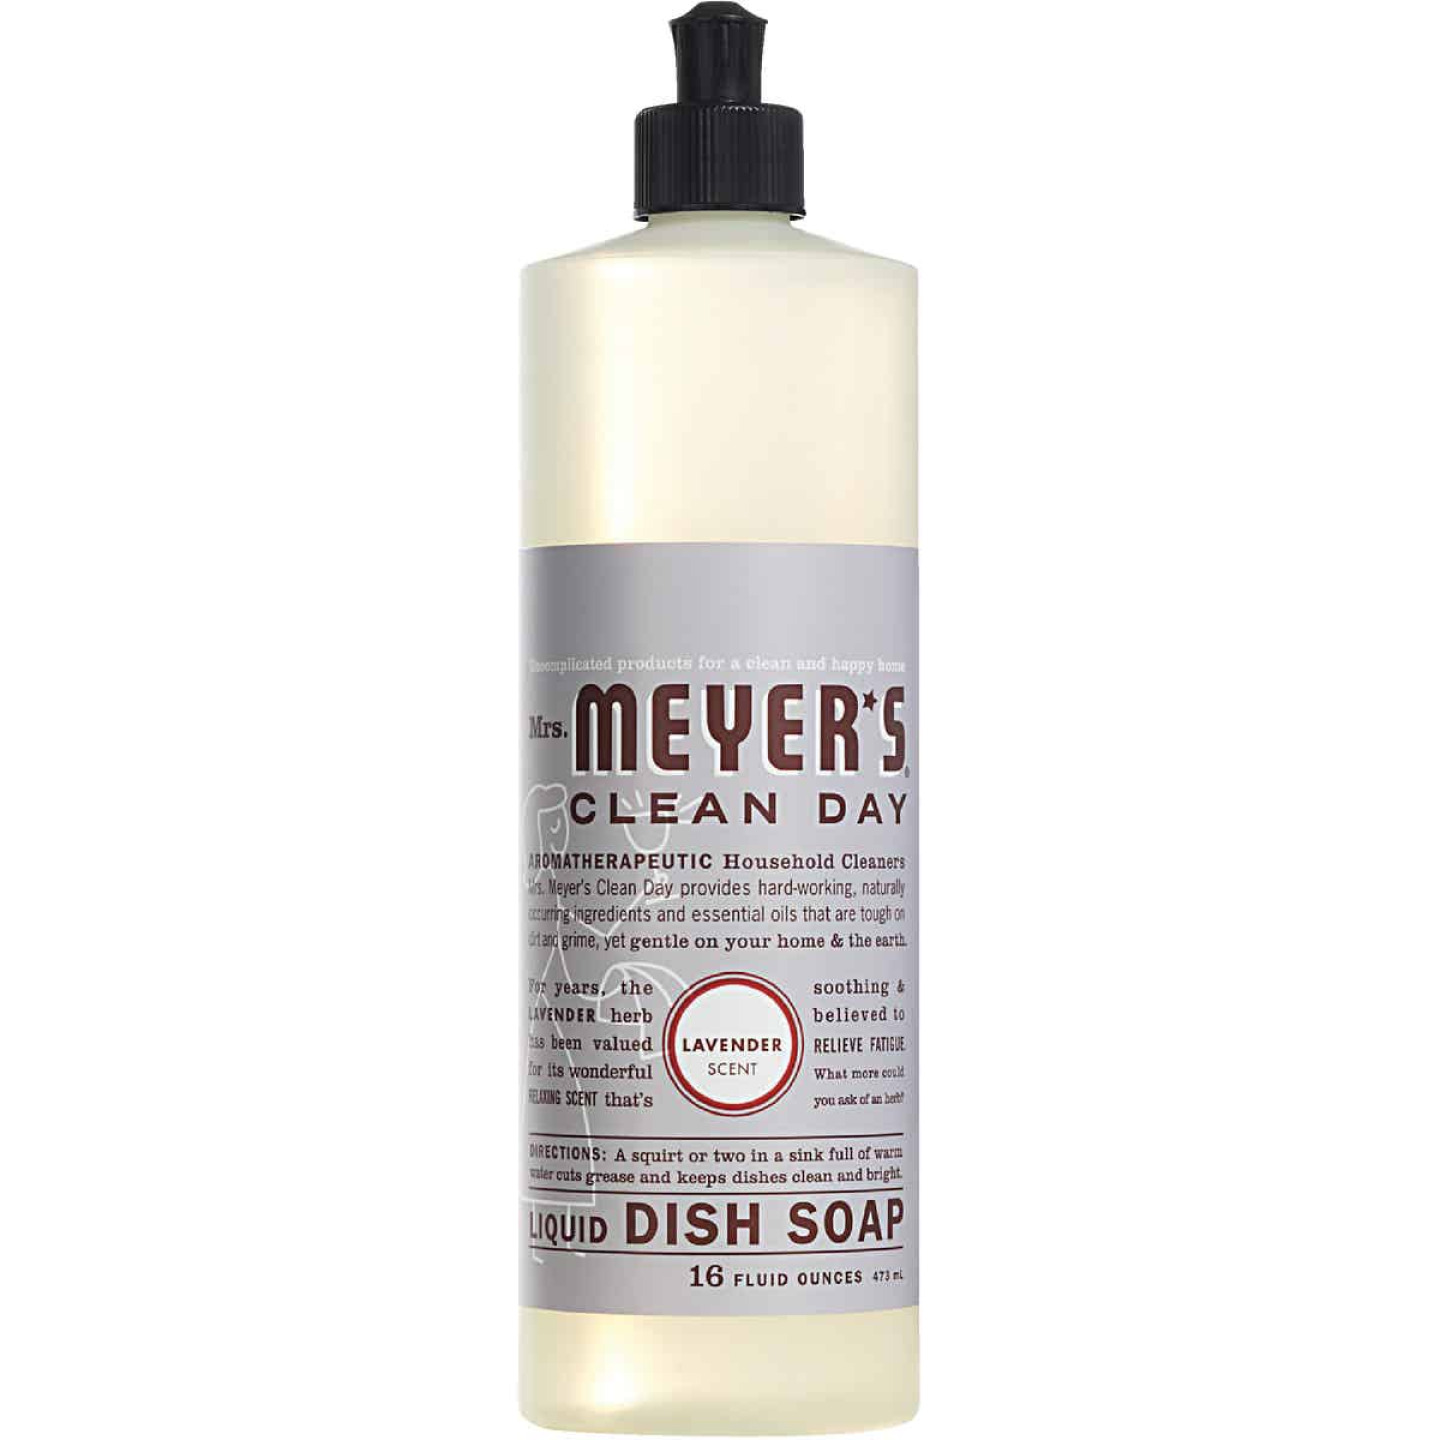 Mrs. Meyer's Clean Day 16 Oz. Lavender Scent Liquid Dish Soap Image 1